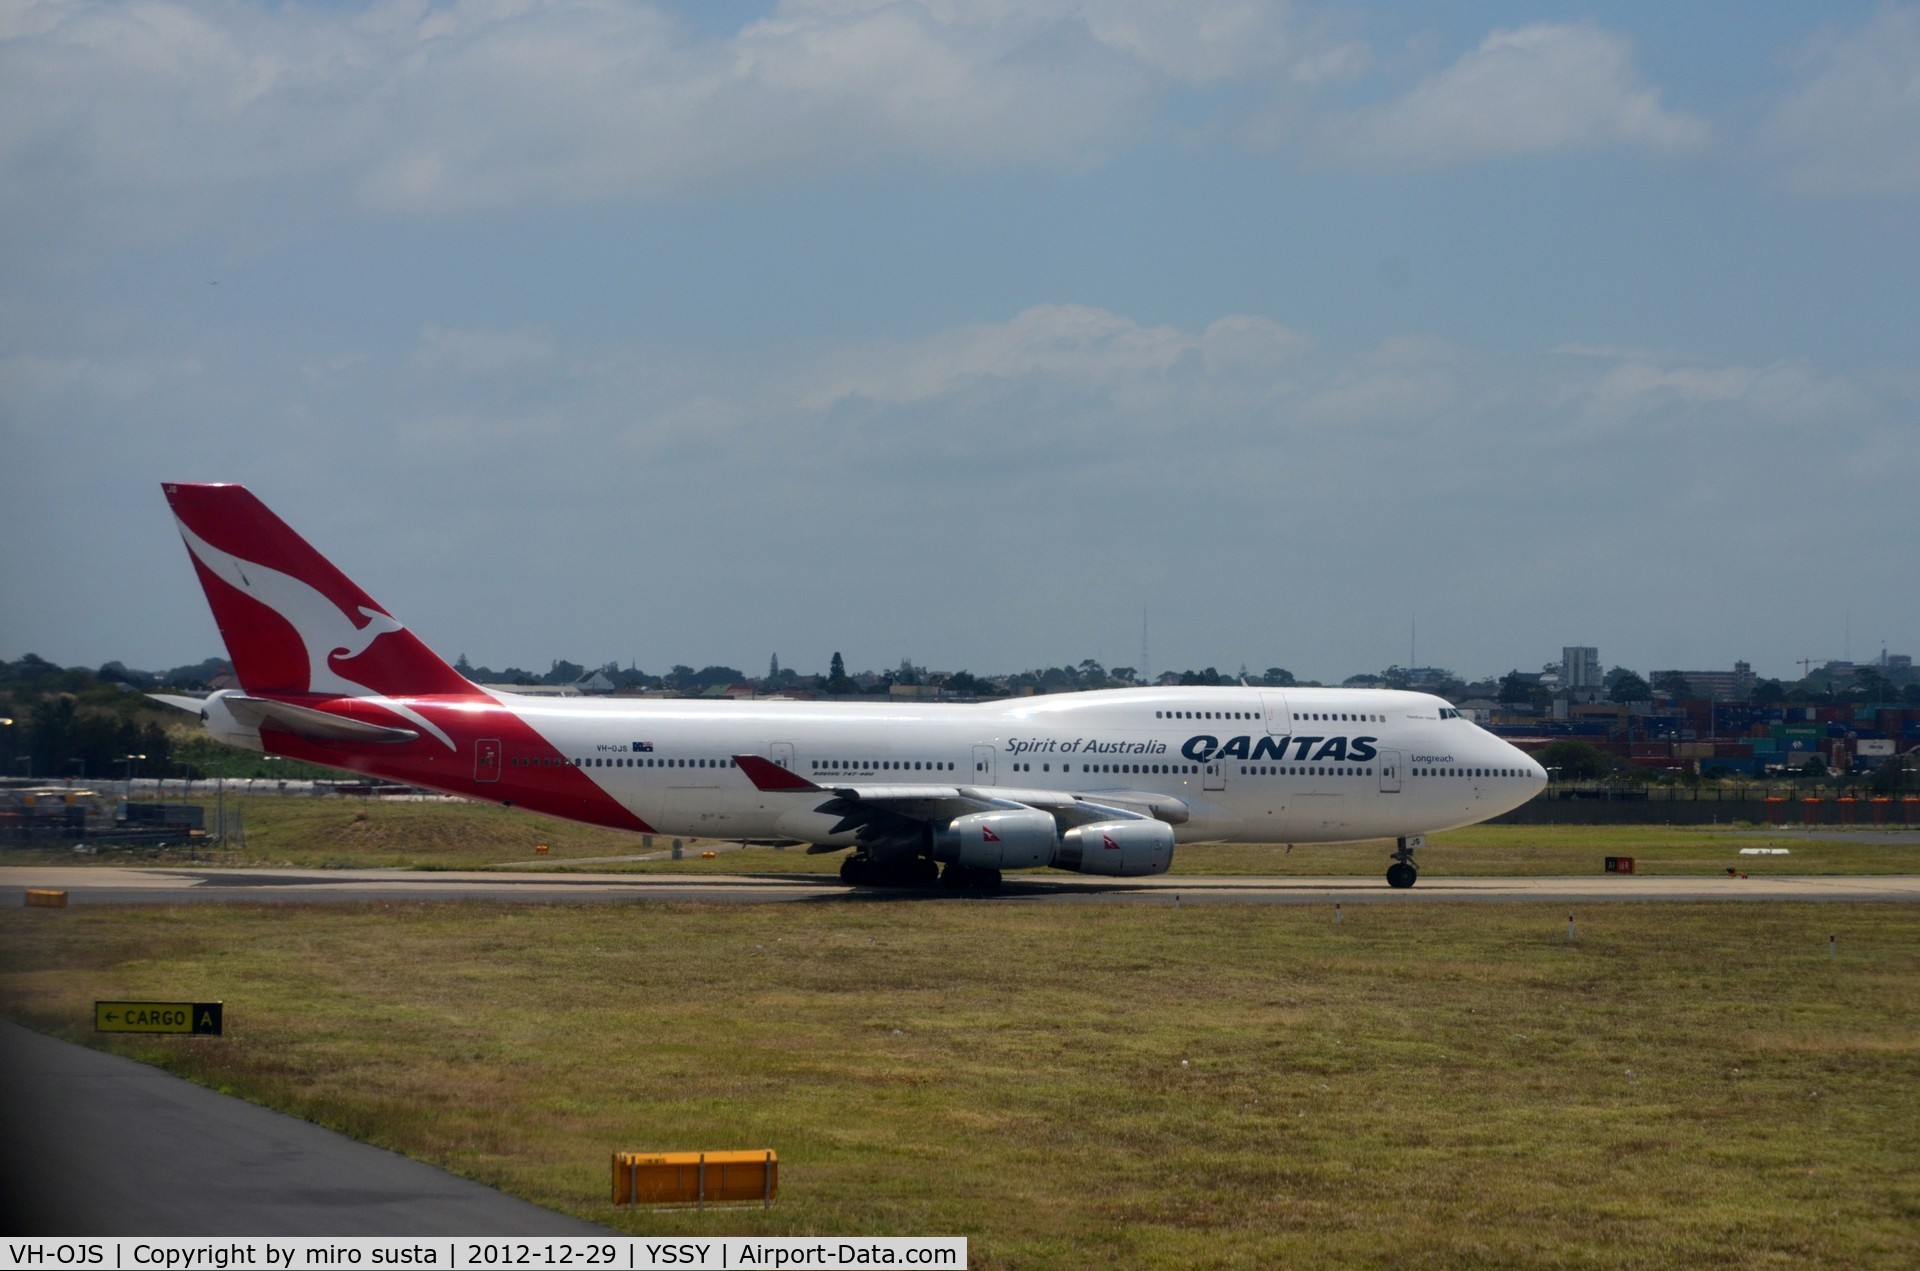 VH-OJS, 1999 Boeing 747-438 C/N 25564, Qantas  International Boeing 747-400 at Sydney Kingsford Smith International airport.